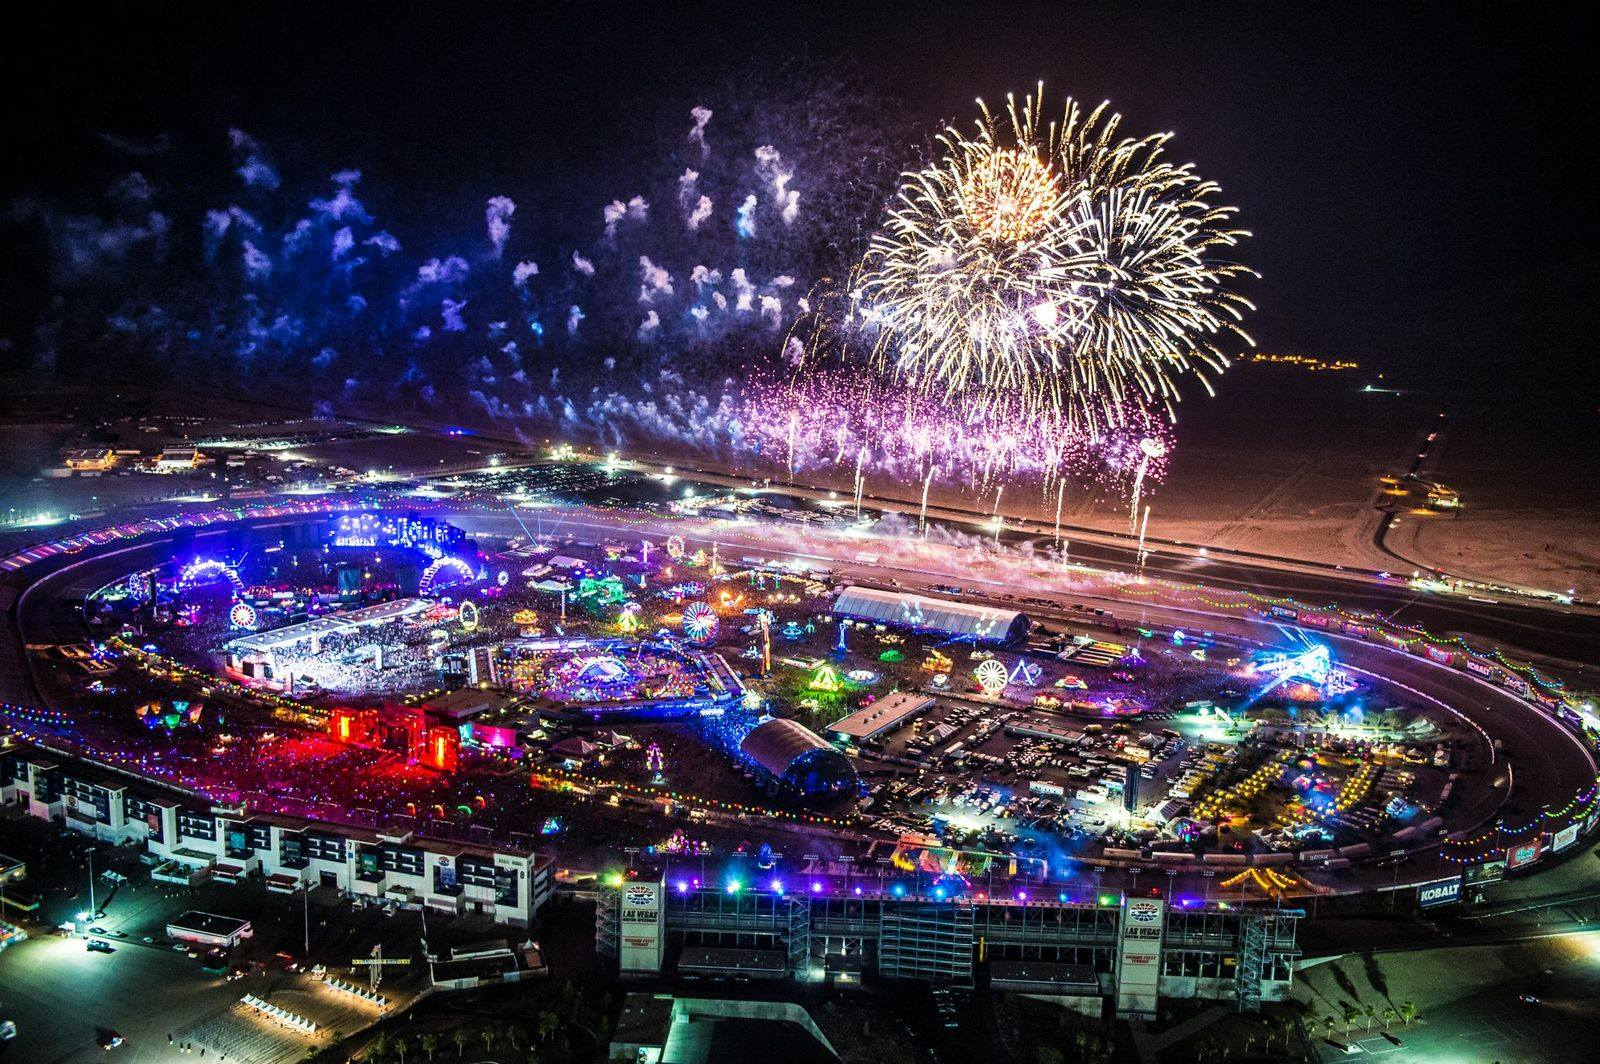 Electric Daisy Carnival 2014 The 18th annual Electric Daisy